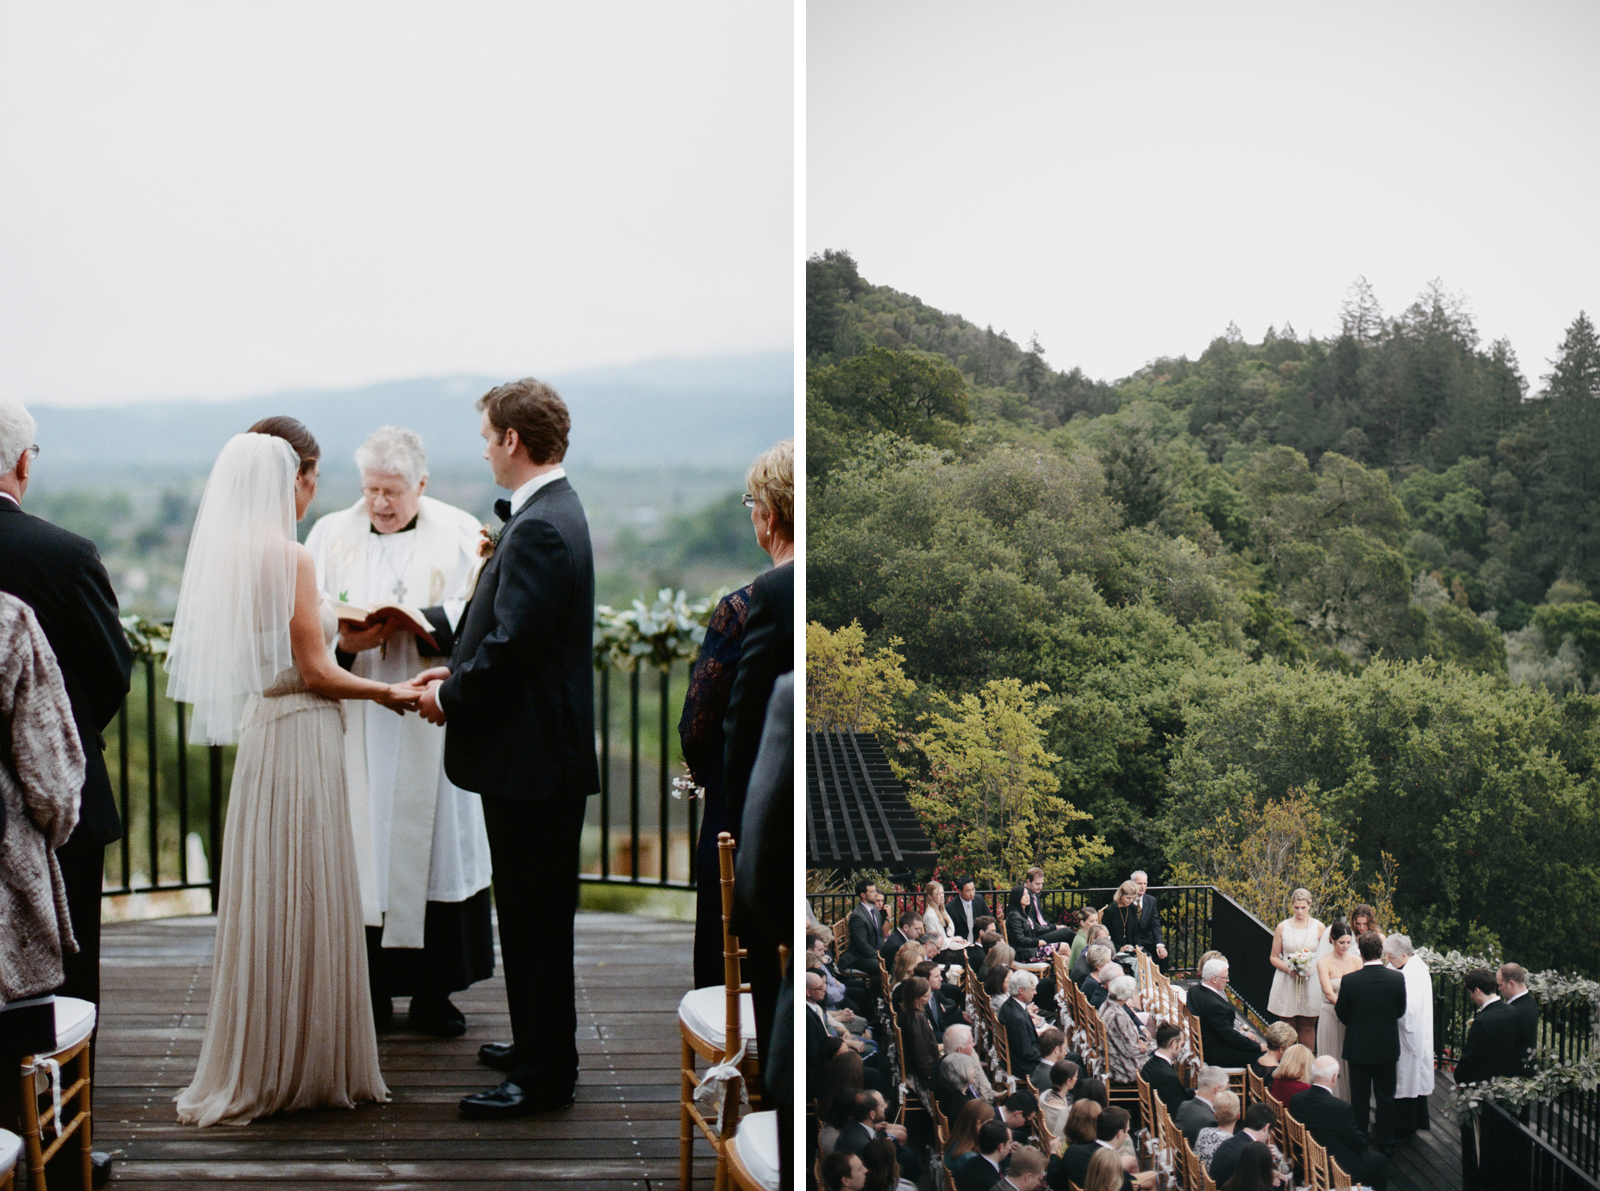 San Francisco - Napa Valley Wedding Photographer - For the Love of It-012.jpg